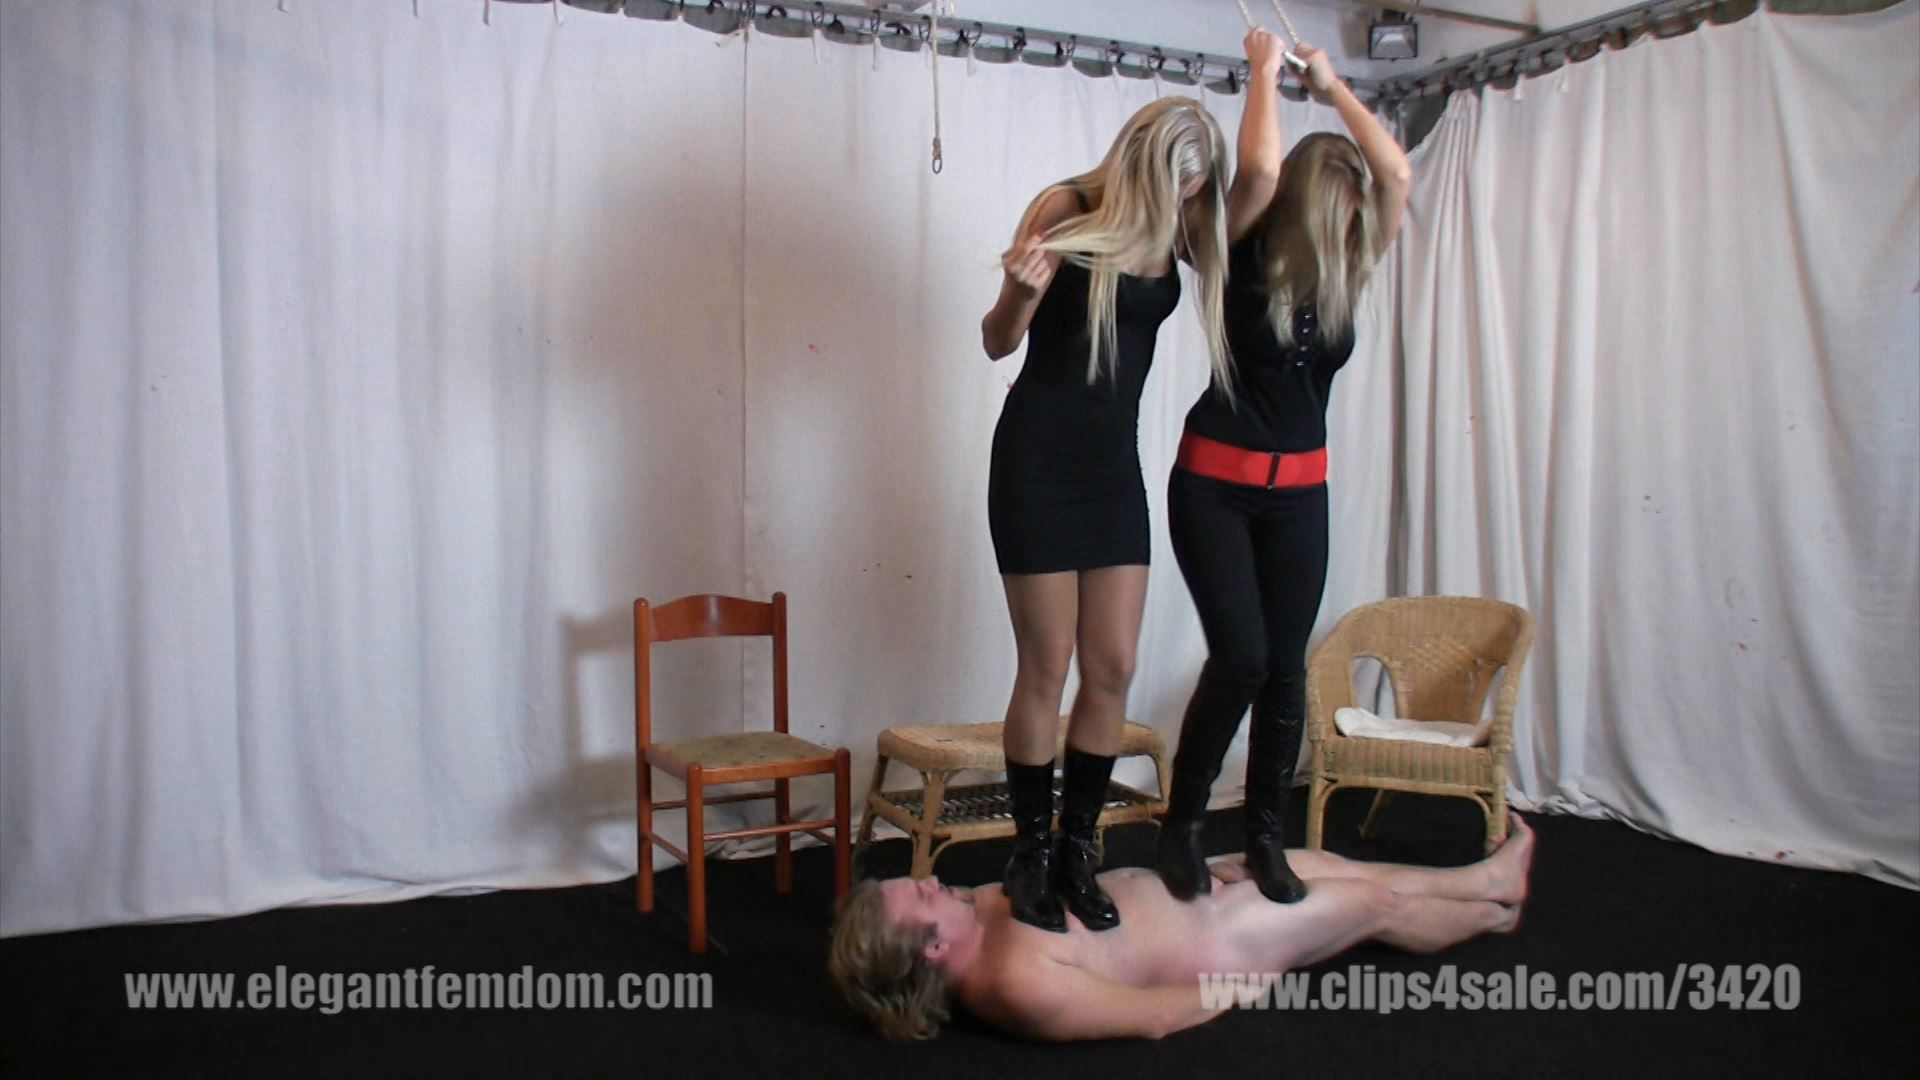 Mistress Demona and Lady Ninette have fun on the carpet slave - ELEGANTFEMDOM - FULL HD/1080p/MP4